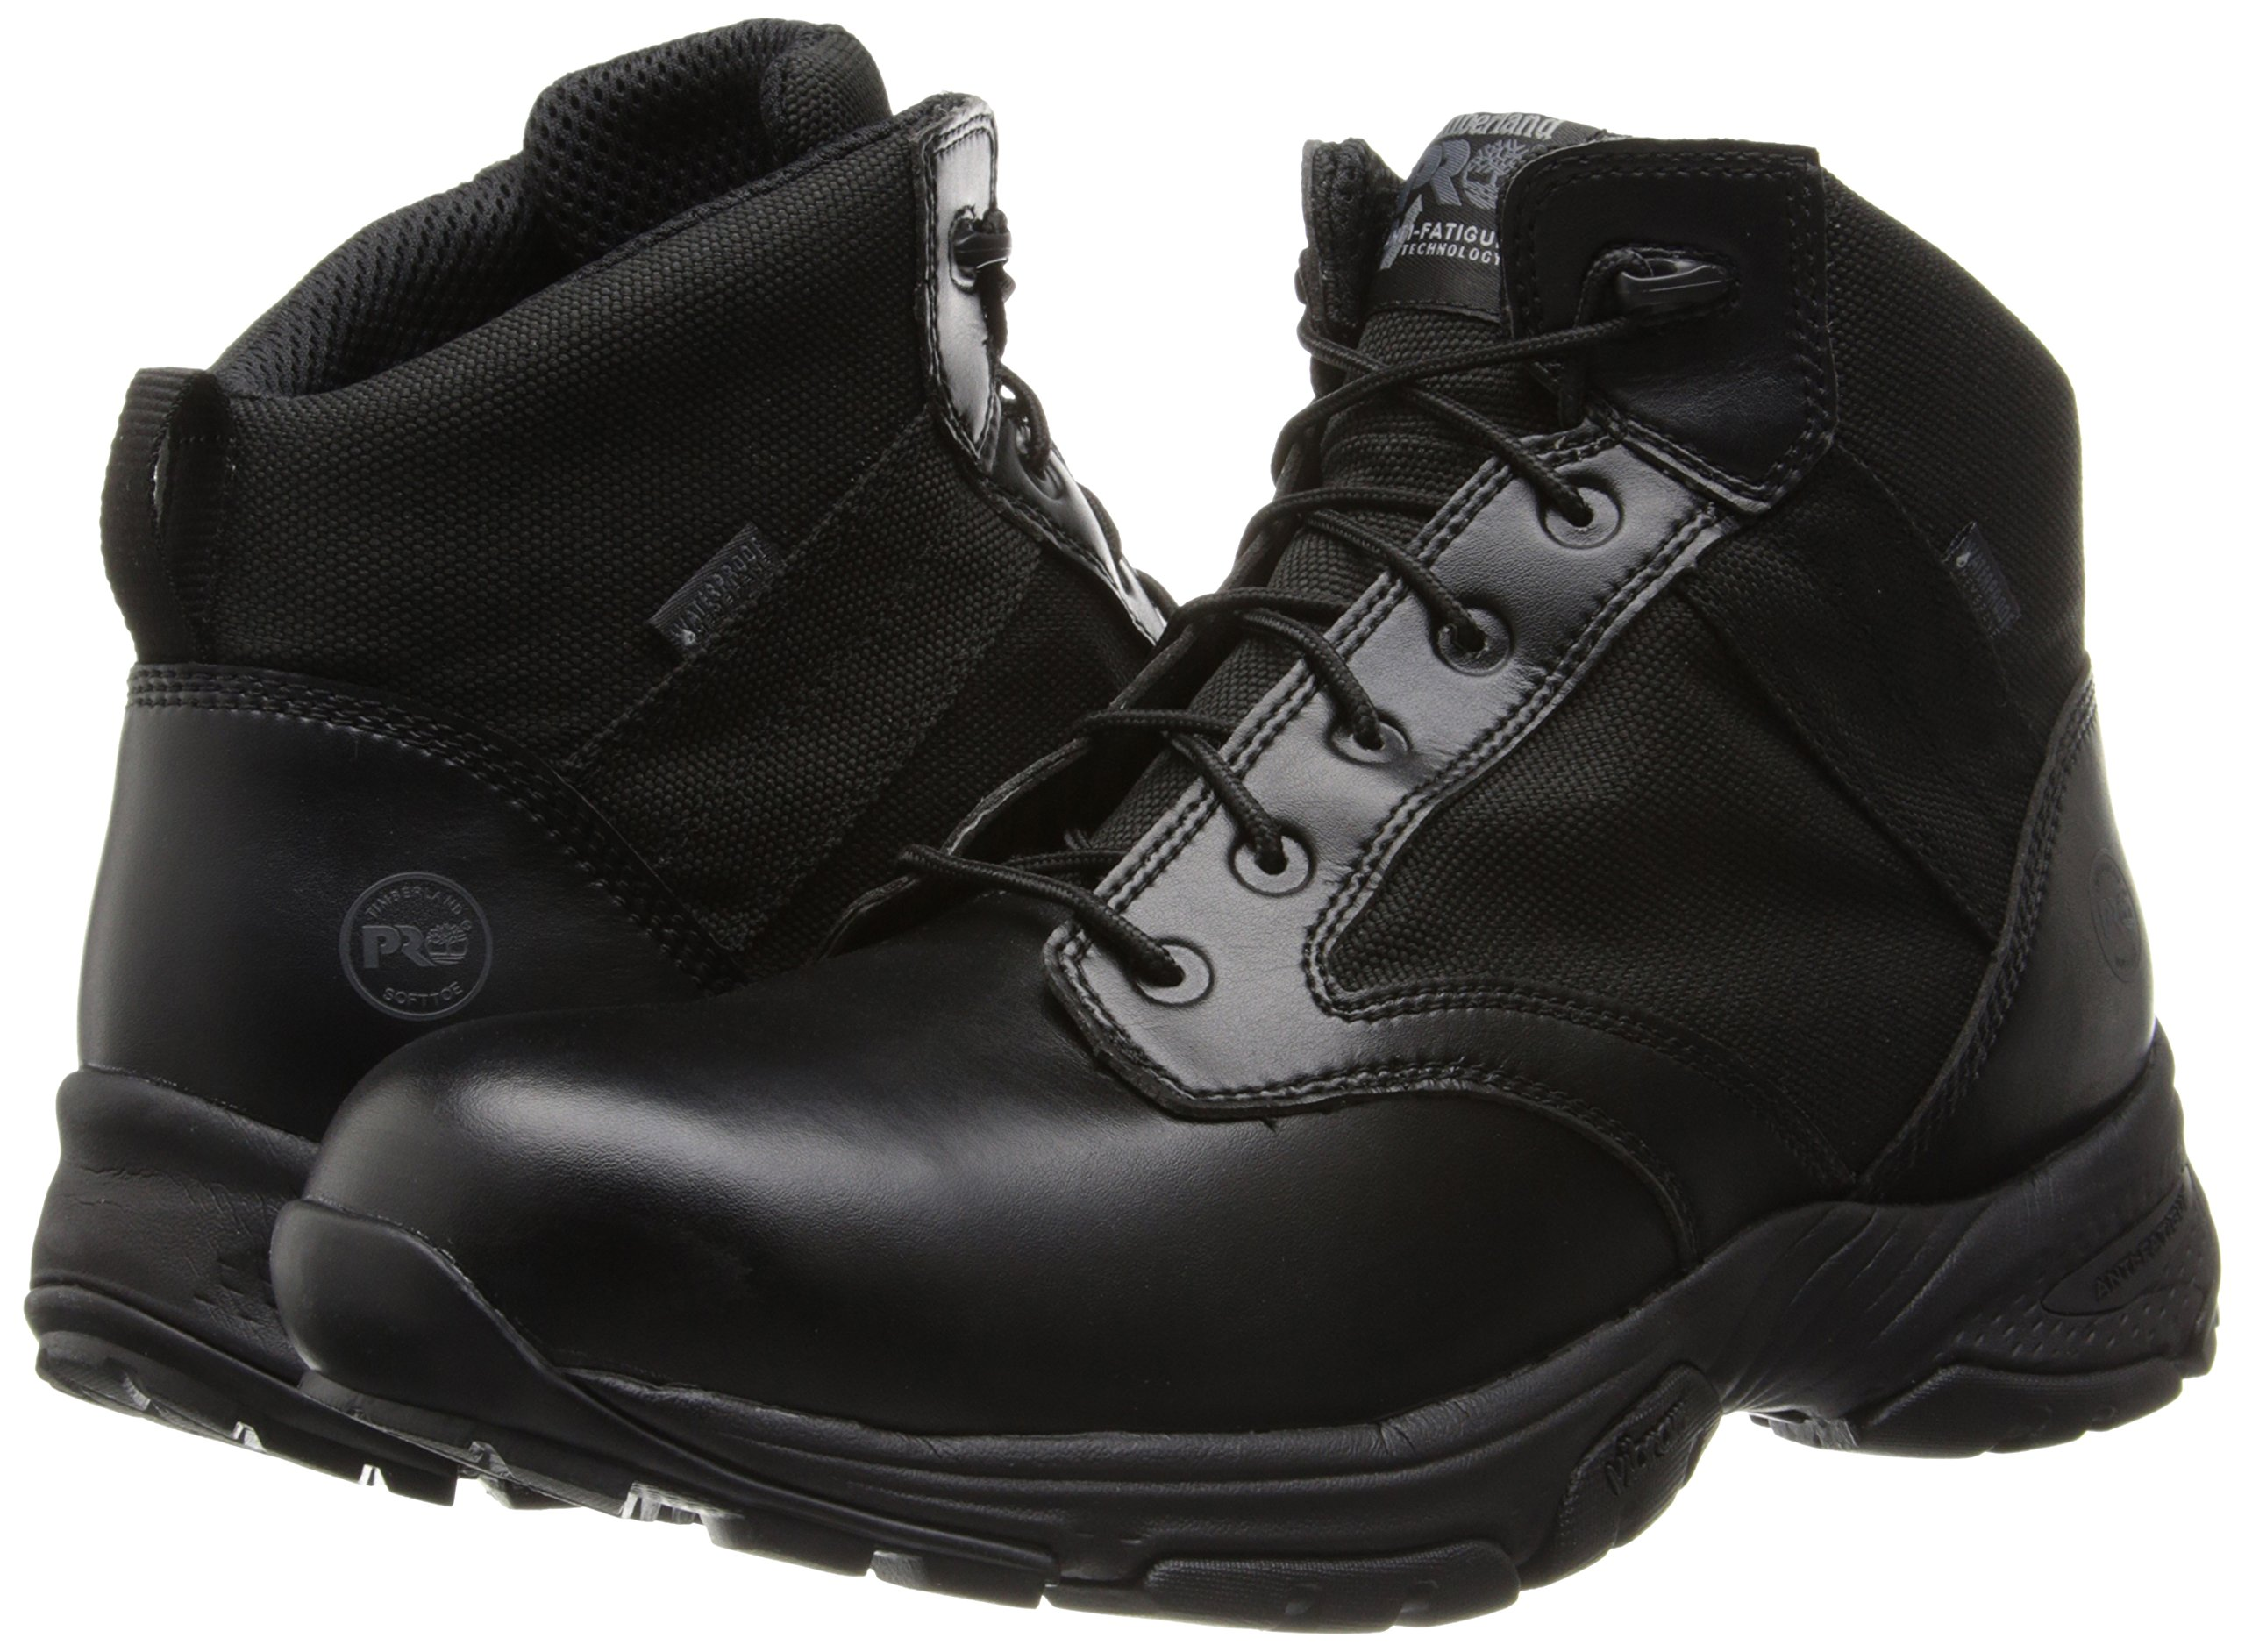 Timberland PRO Men's 5 Inch Valor Soft Toe Waterproof Duty Boot,Black Smooth With Textile,11.5 M US by Timberland PRO (Image #6)